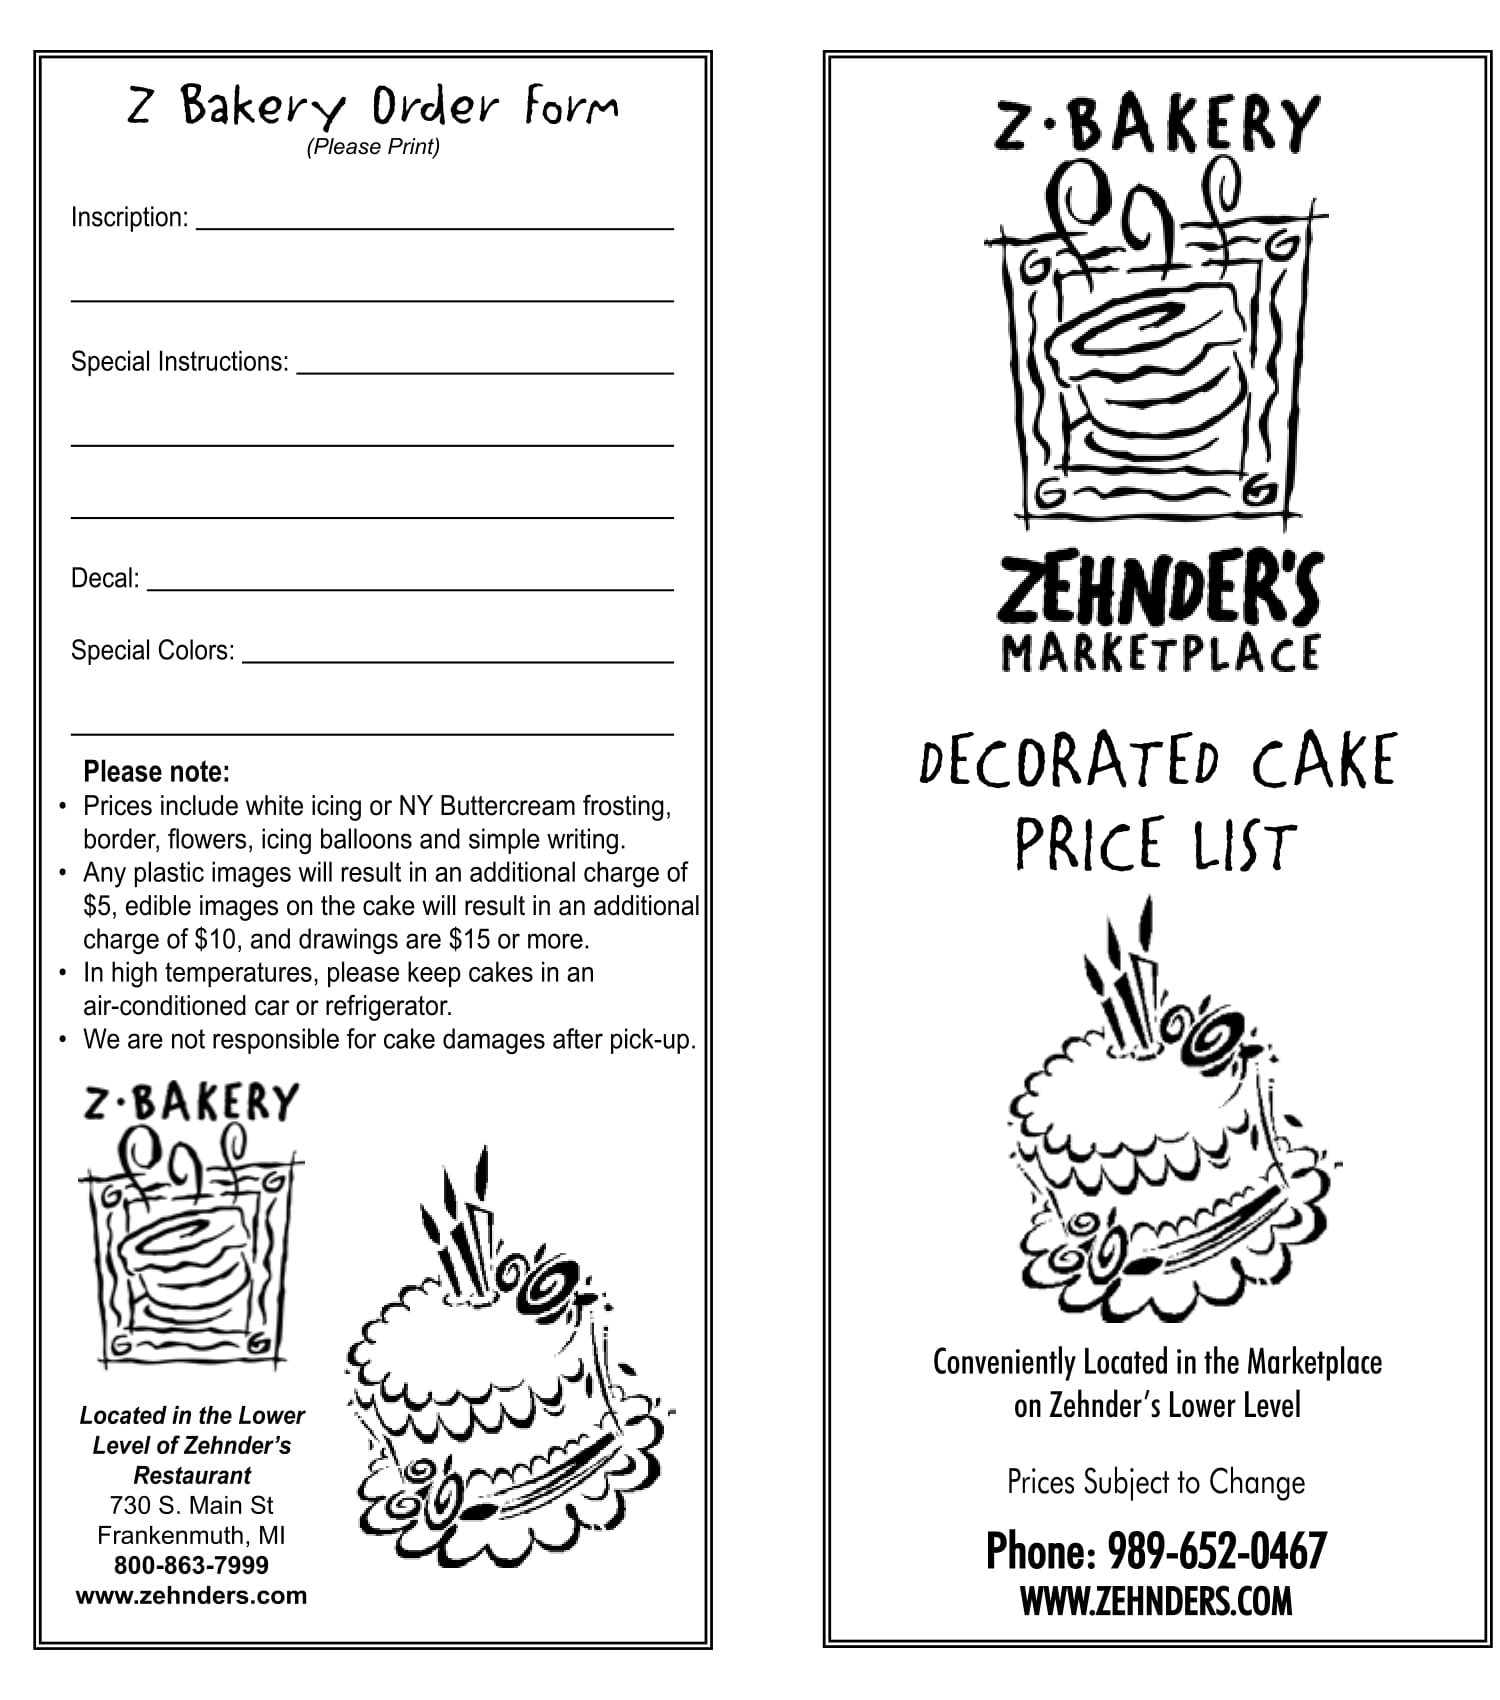 decorated cake order form 1